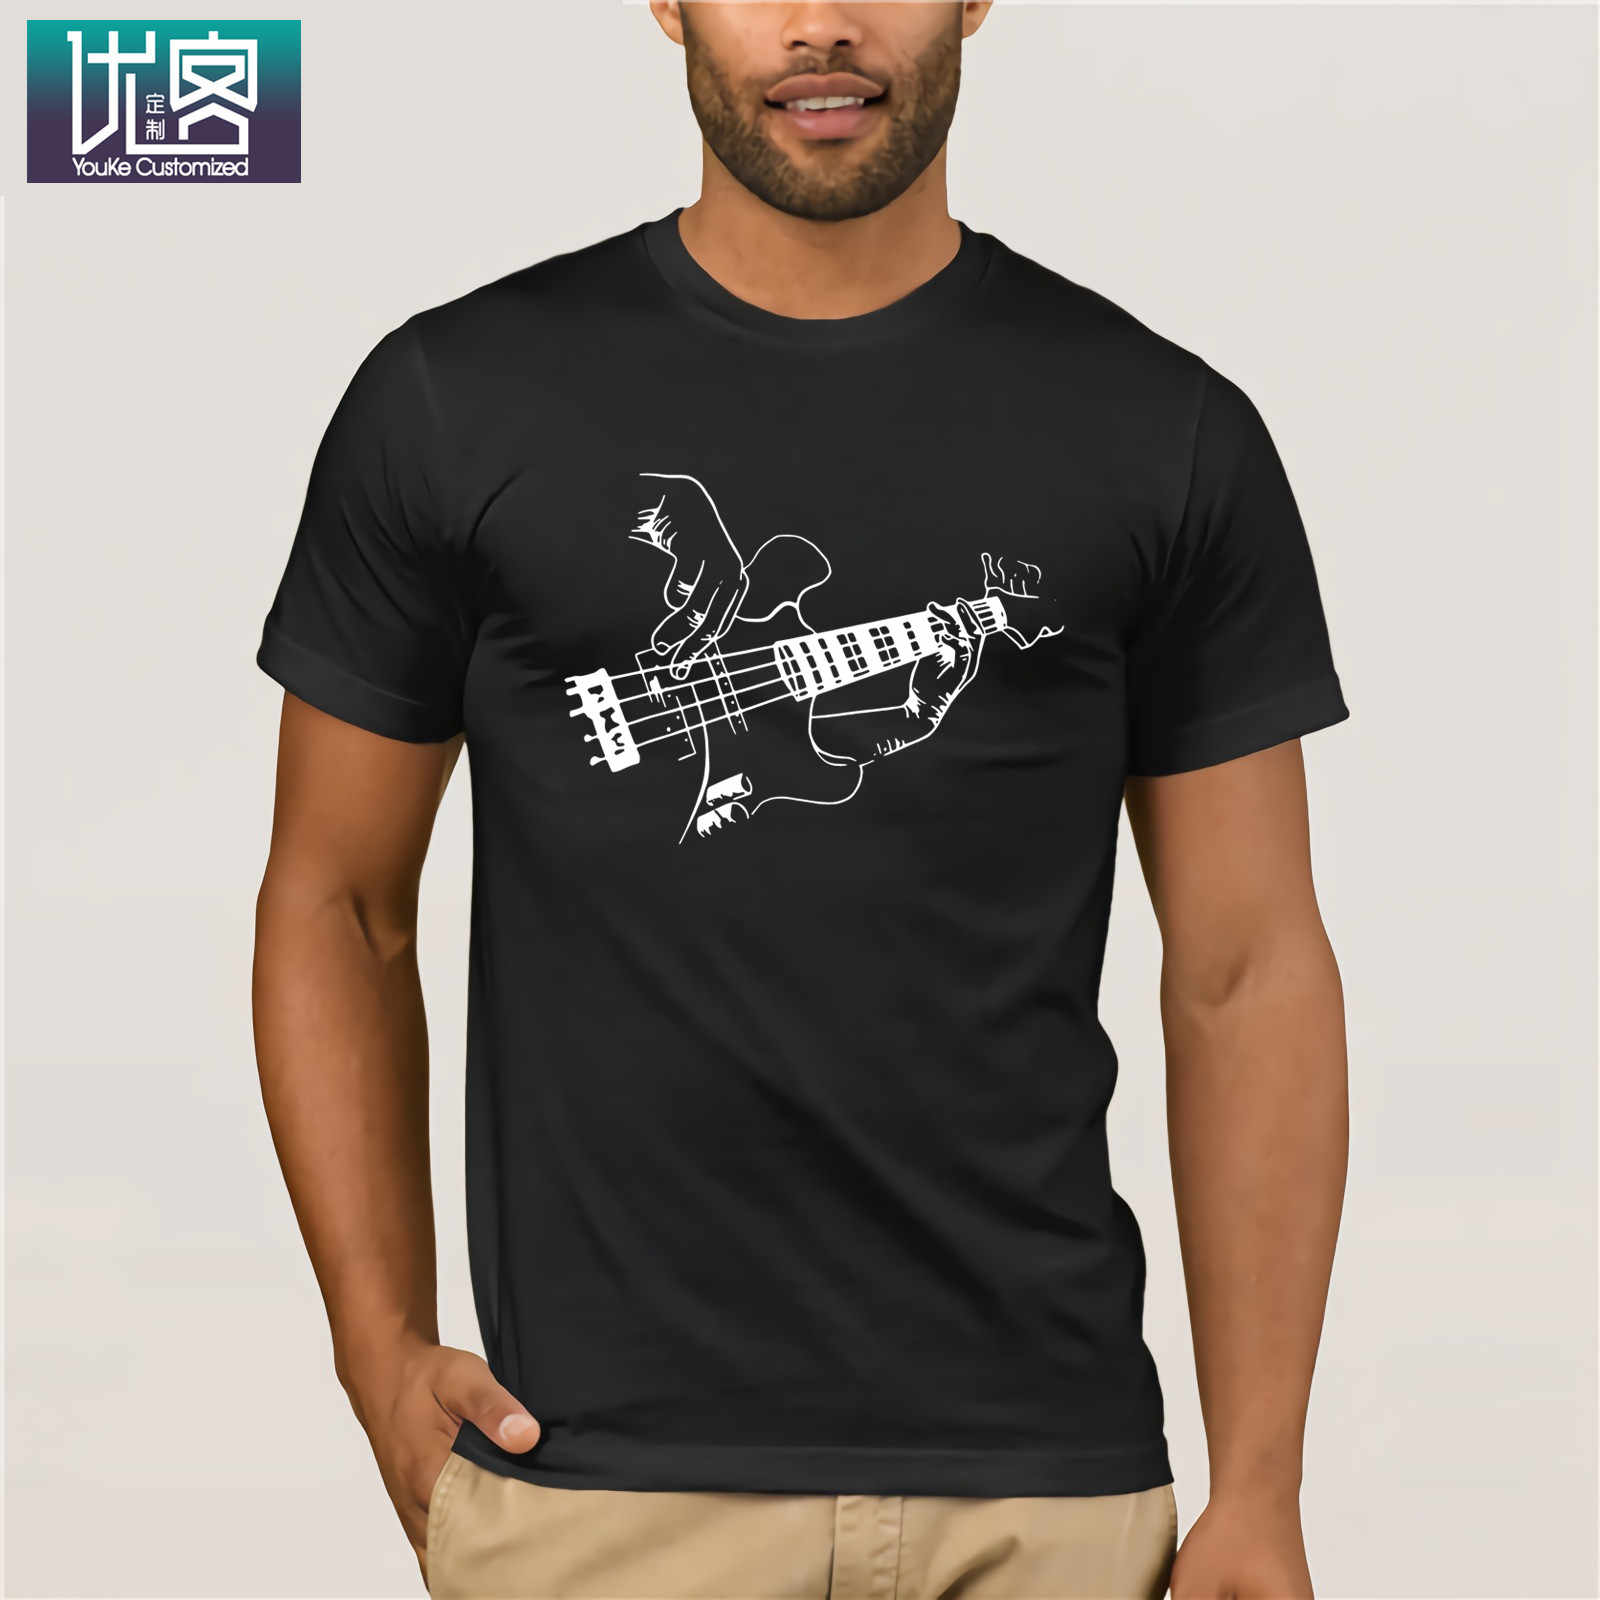 Bass Guitar Player Music Guitarist Musician Rock 2019 Summer Men's Short Sleeve T-Shirt Humor Tee Shirt 100% Cotton Tops Graphic